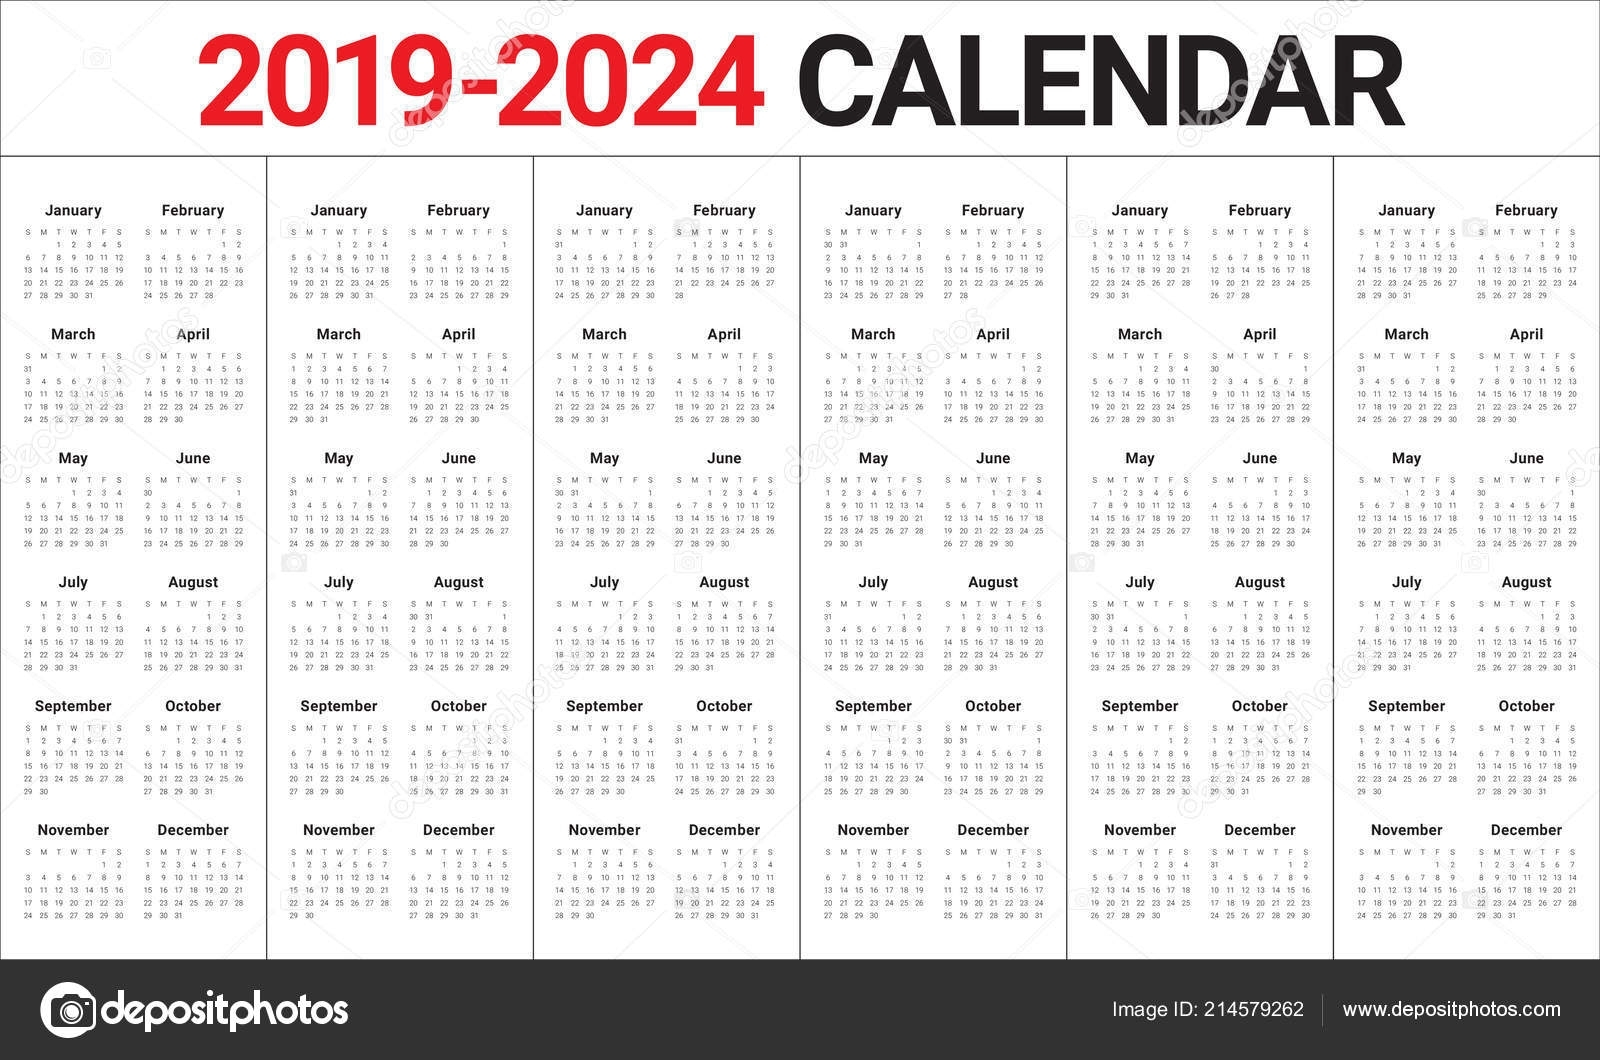 Year 2019 2020 2021 2022 2023 2024 Calendar Vector Design Template, Simple  And Clean Design 214579262 in Year Calendar 2019 2020 2021 2022 2023 2024